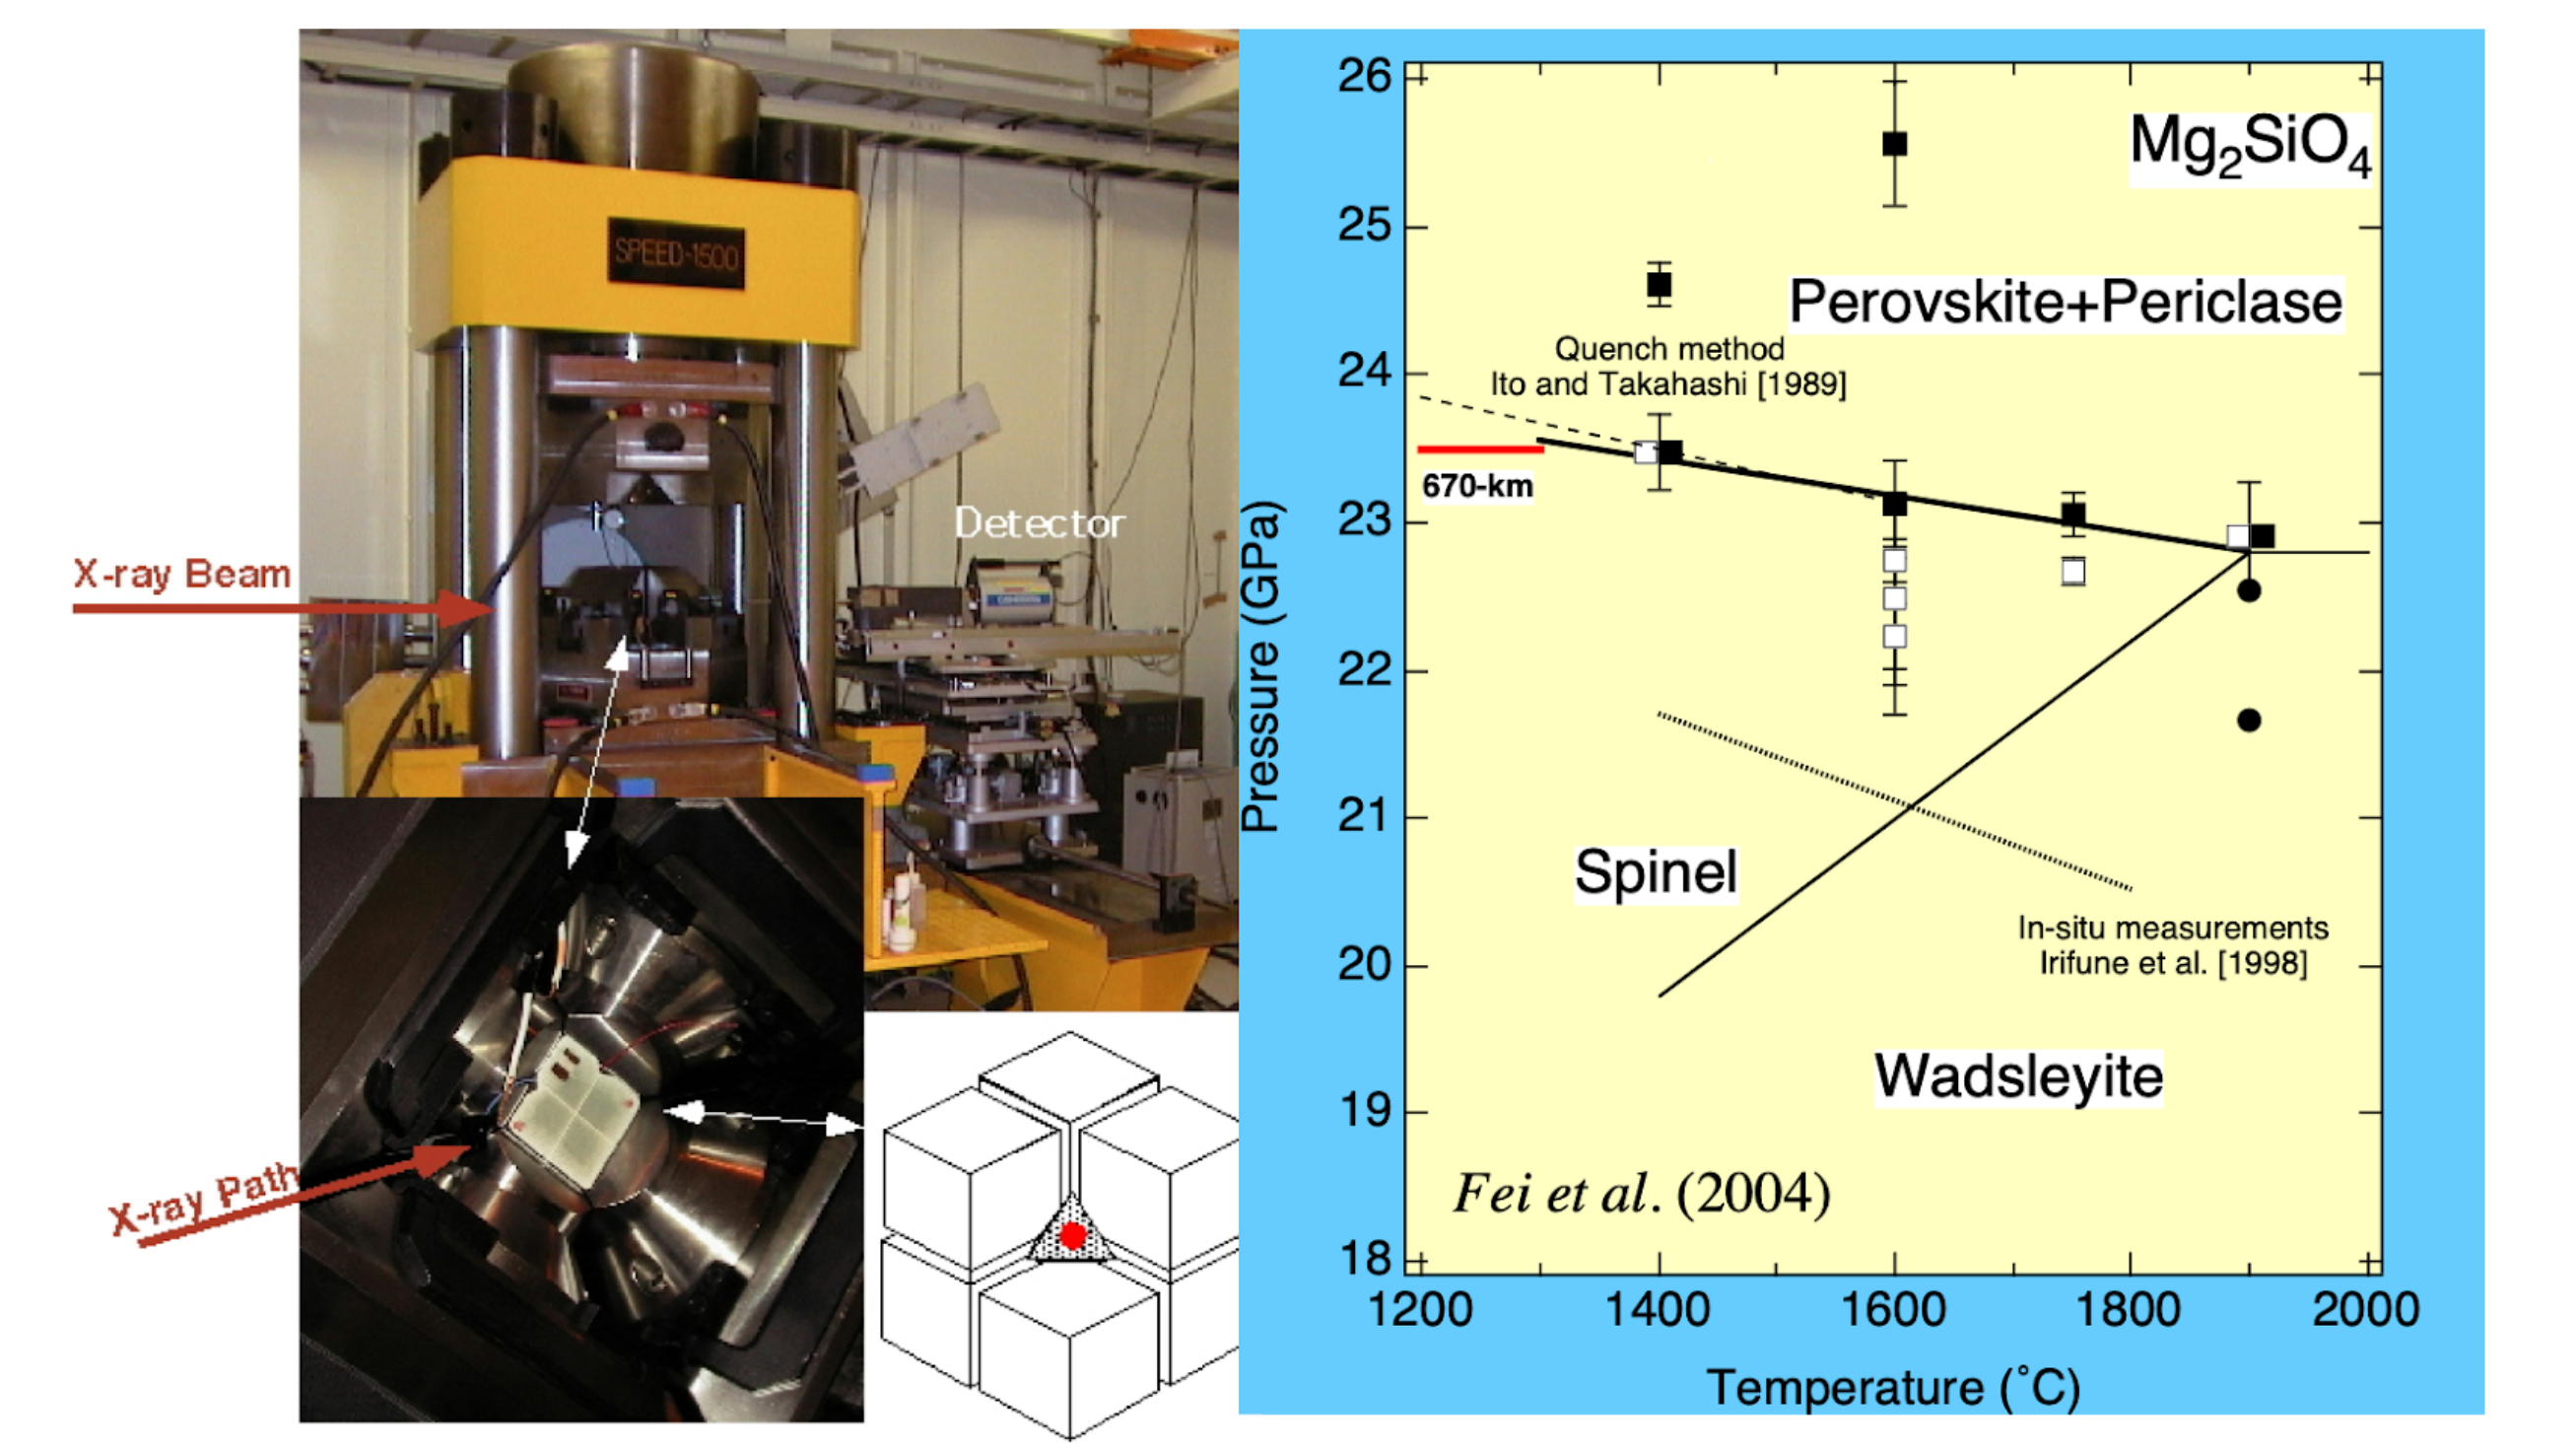 The experimentally determined phase boundary of the postspinel transformation in Mg2SiO4 by in-situ X-ray diffraction measurements.